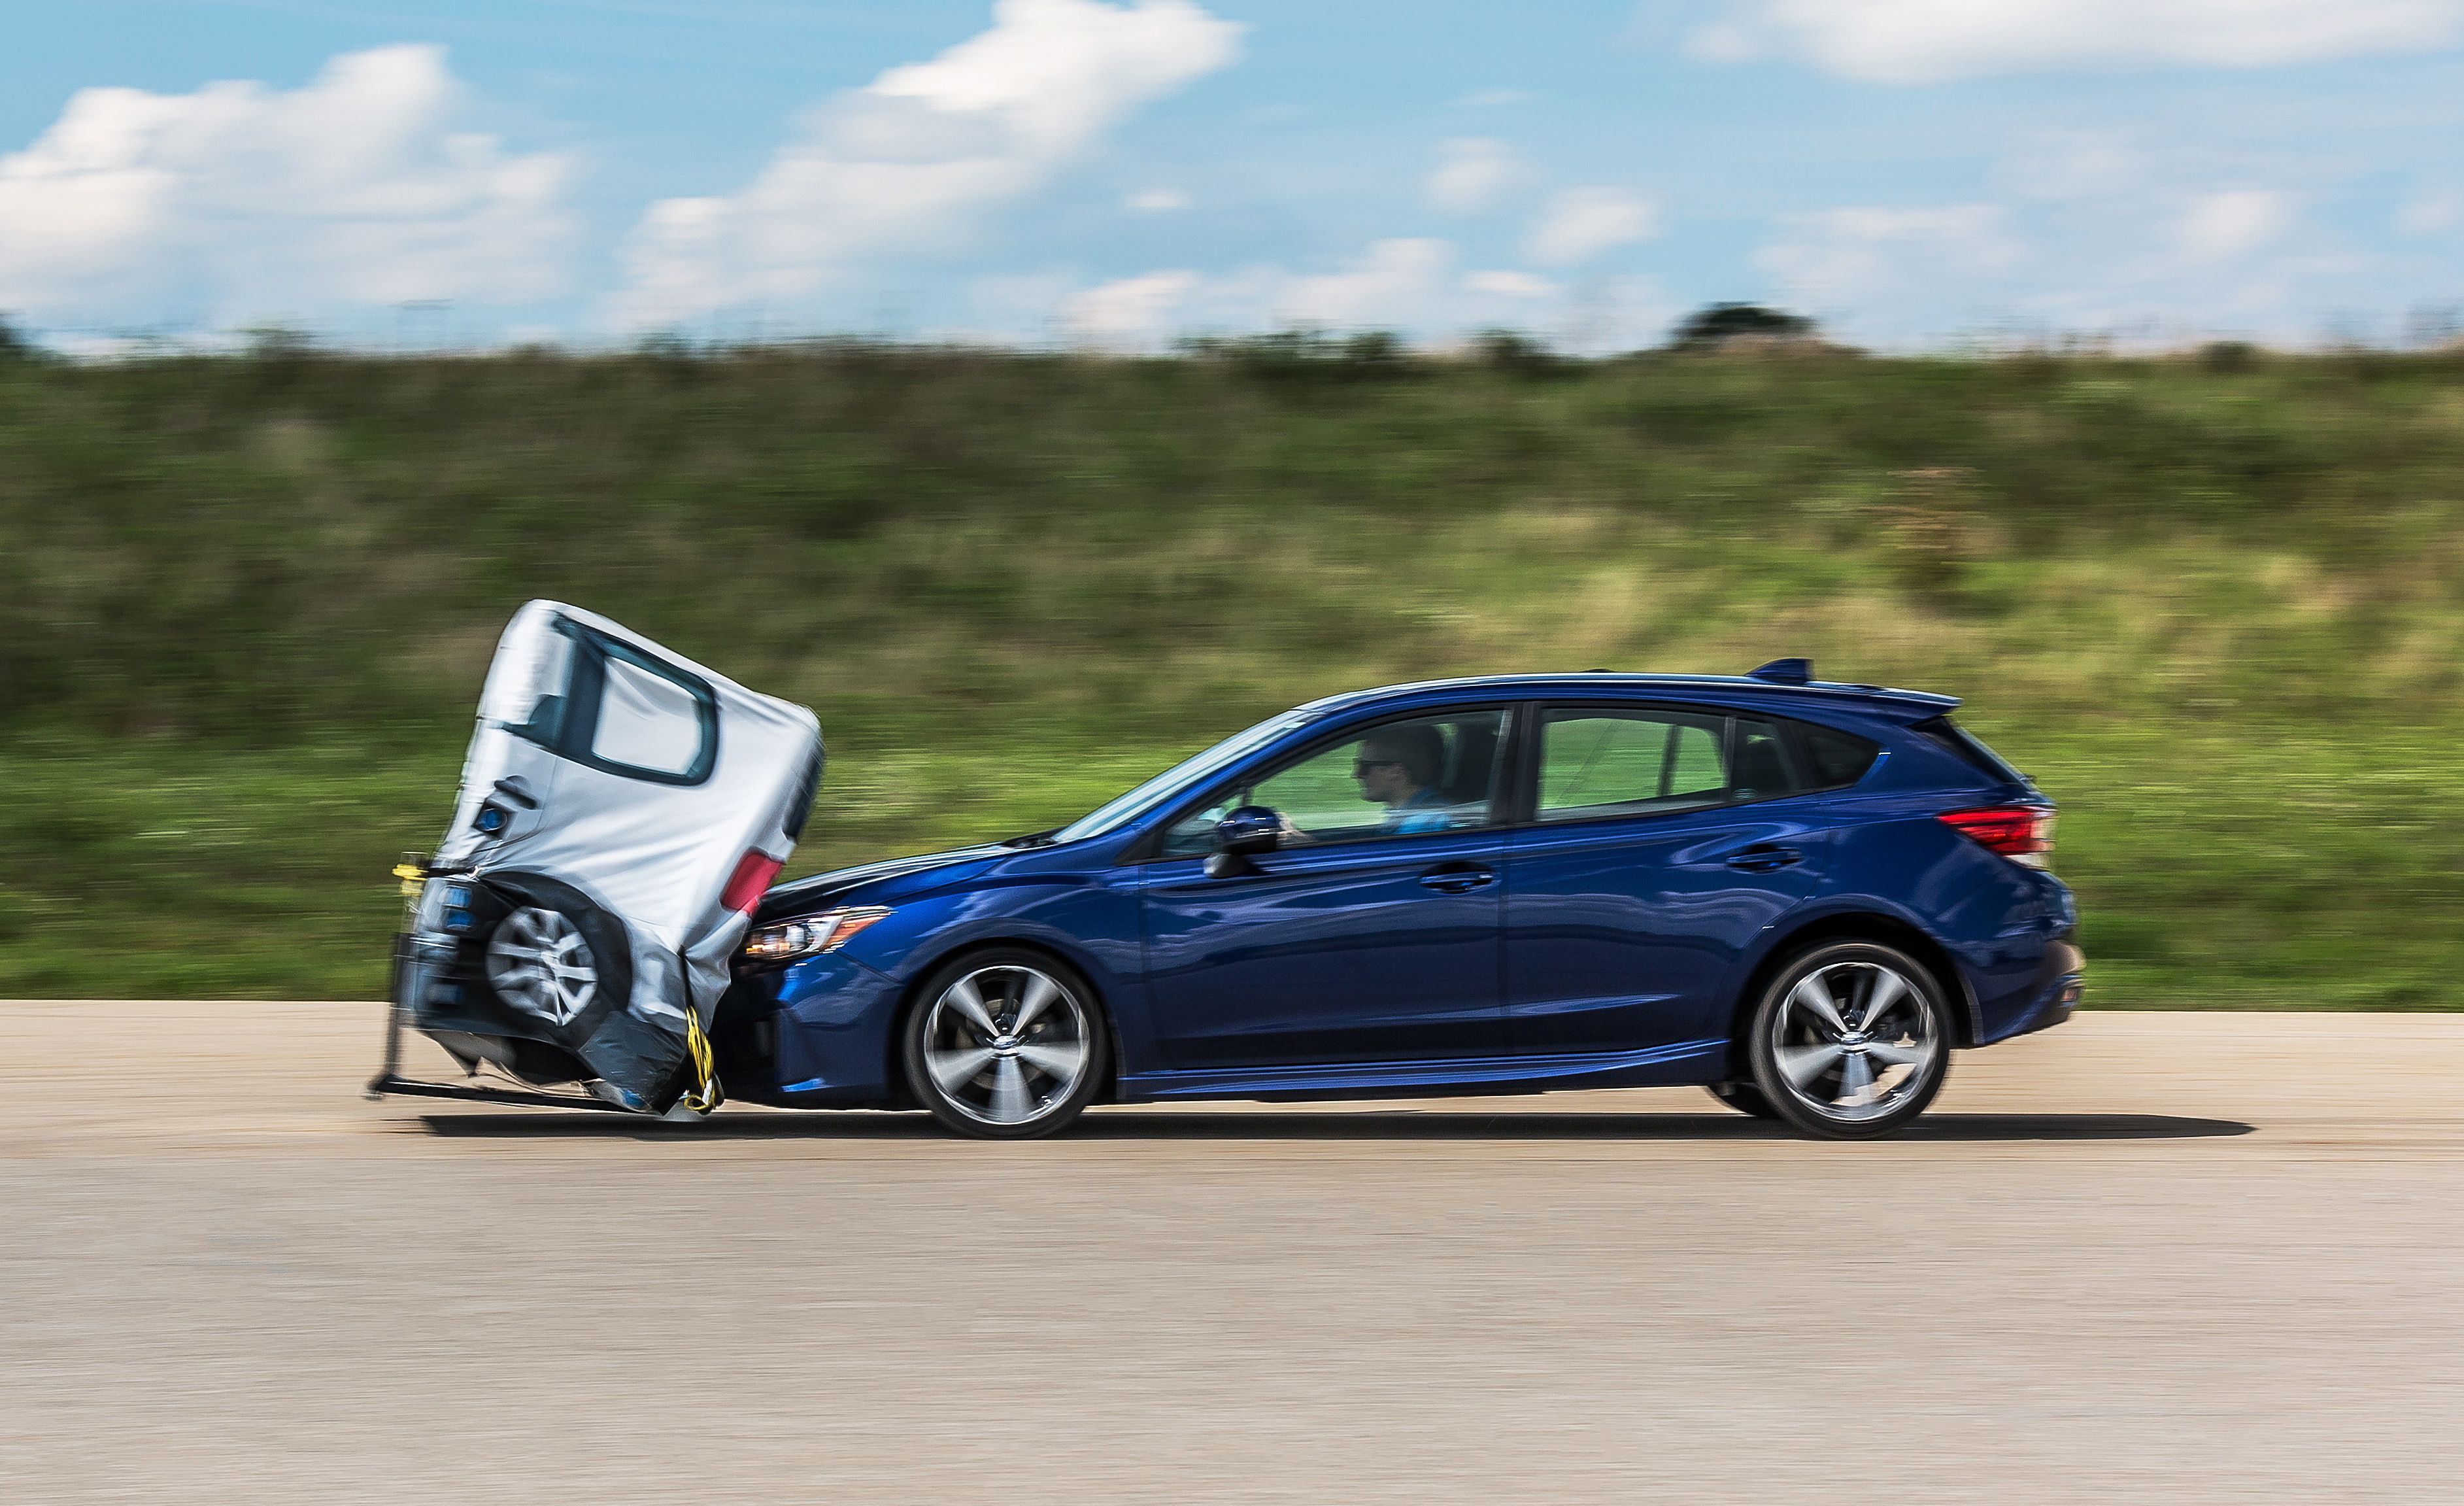 We Crash Four Cars Repeatedly To Test Their Automatic Braking Systems